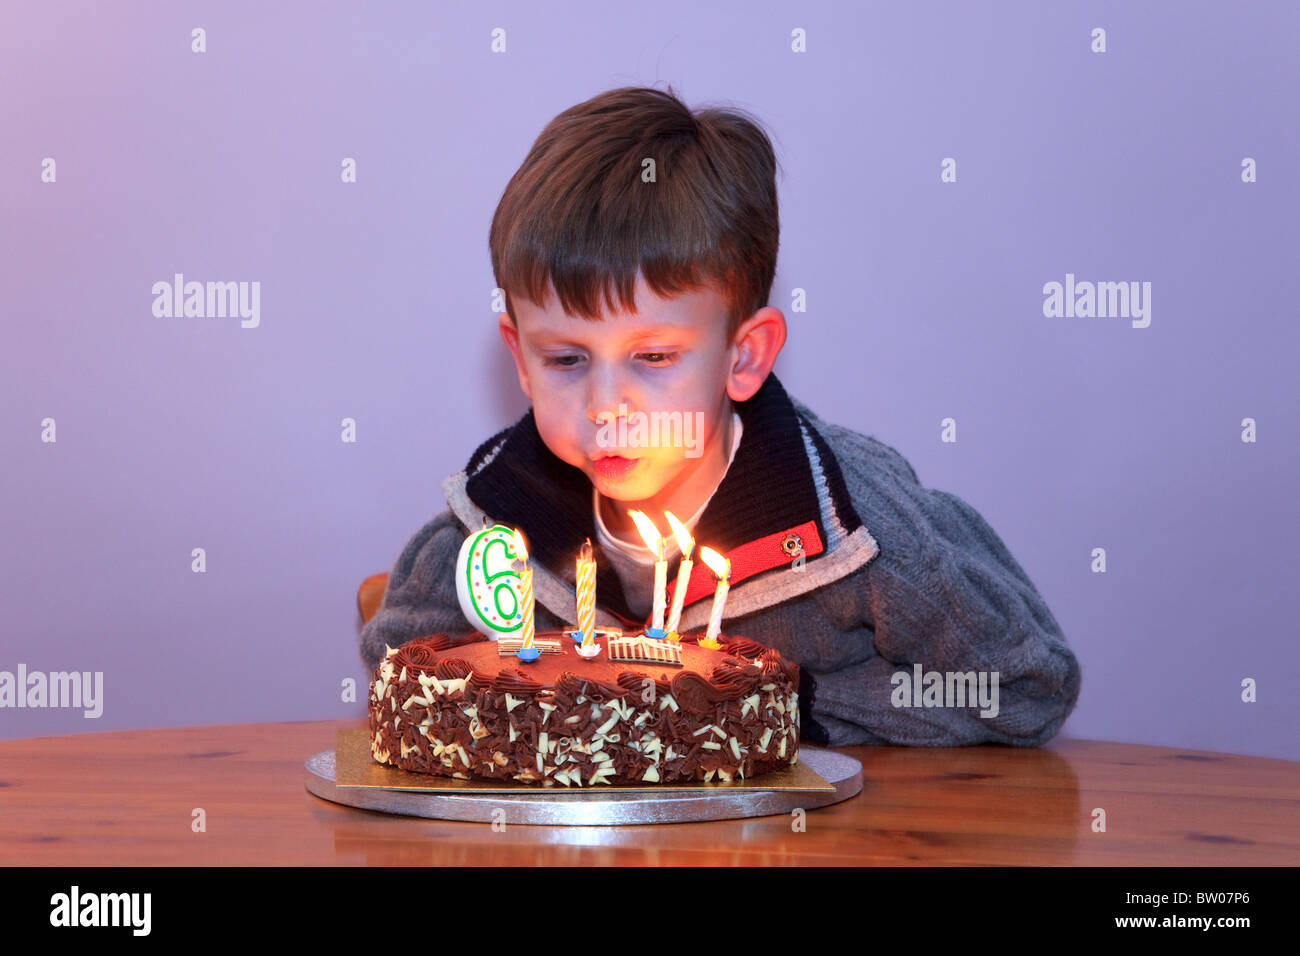 A 6 Year Old Boy Blowing Out The Candles On His Birthday Cake